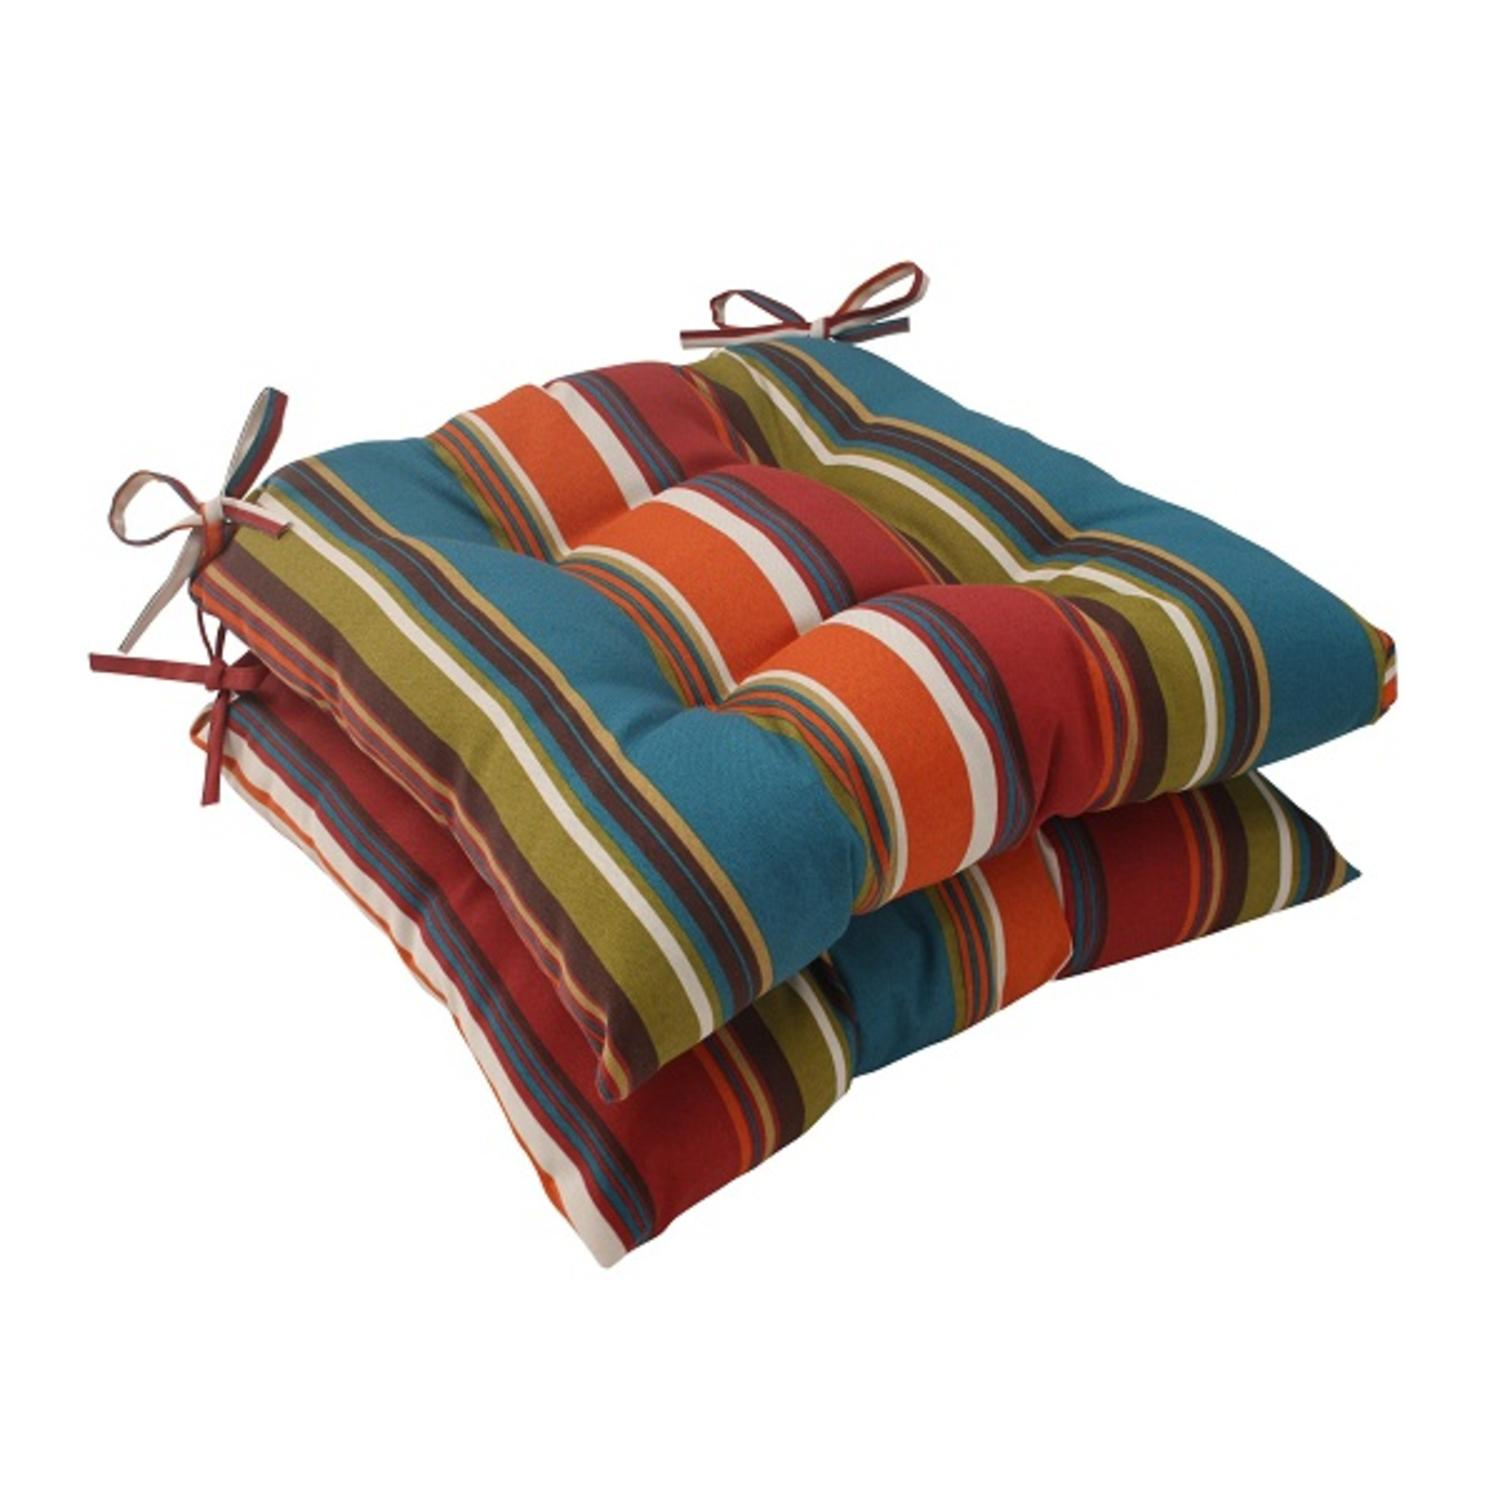 Set of 2 Moroccan Multi-color Striped Outdoor Tufted Seat Cushions 19""